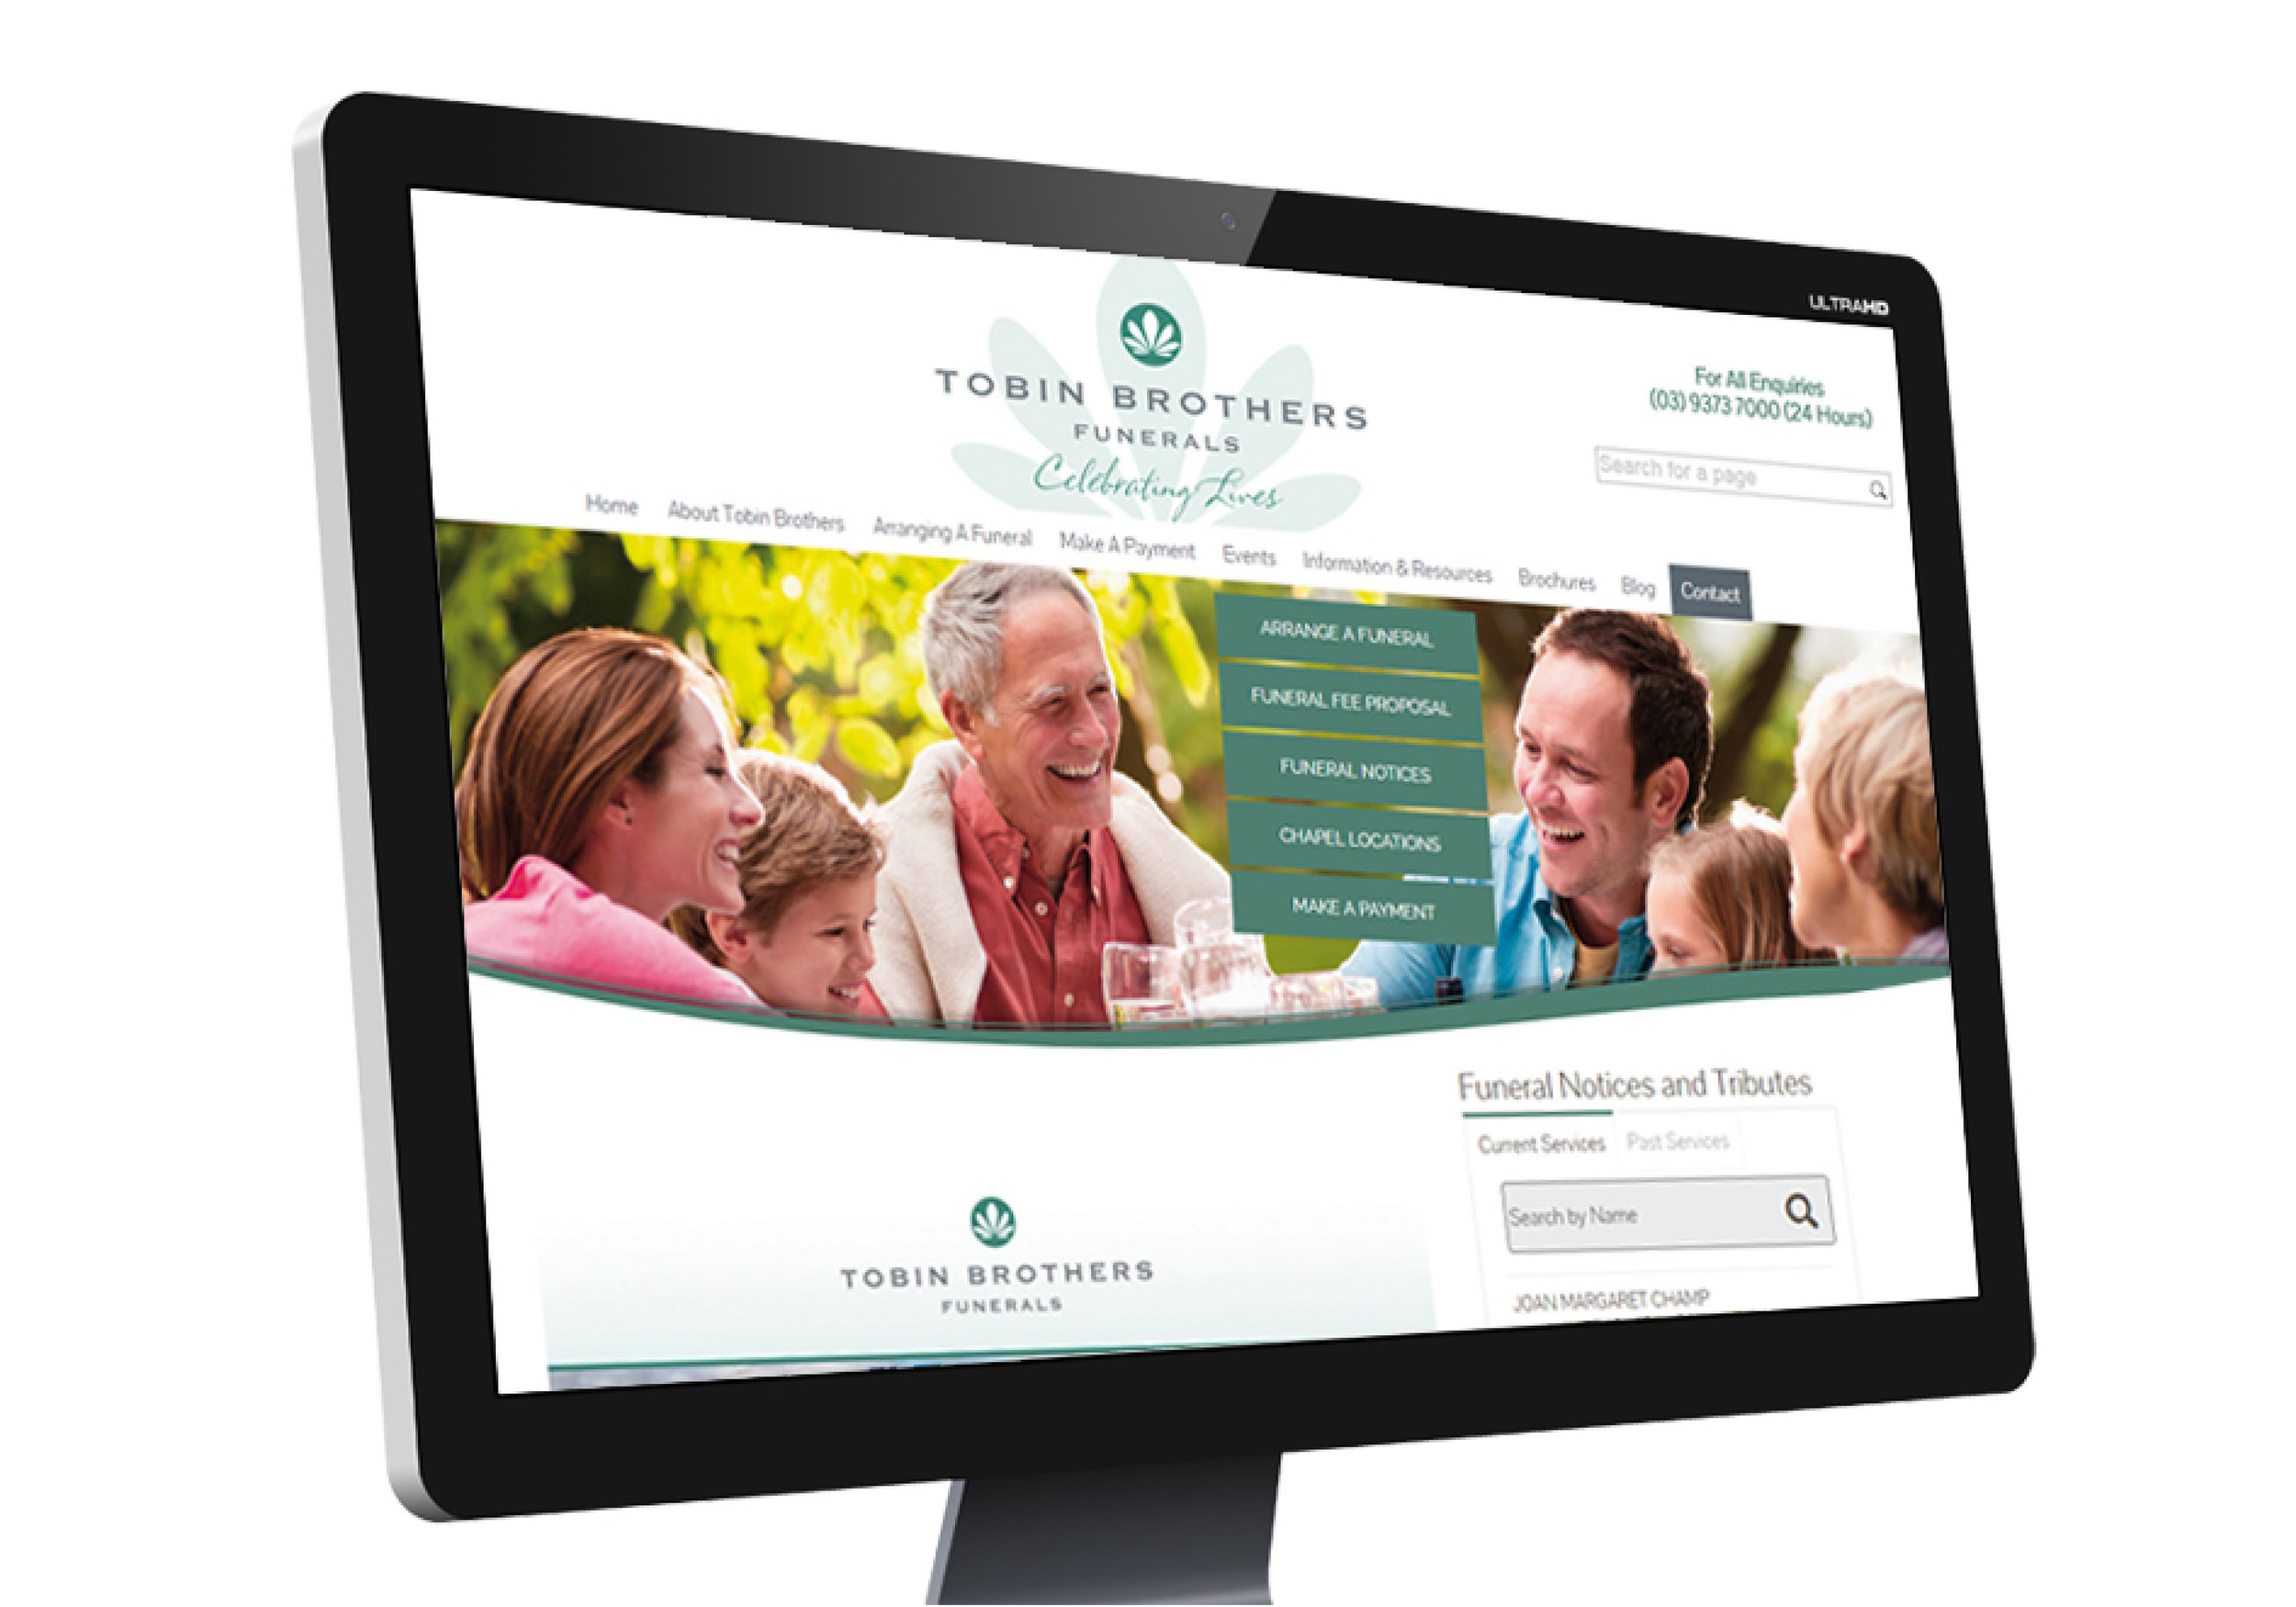 TOBIN BROTHERS WEBSITE  : CREATIVE DIRECTION  view more...